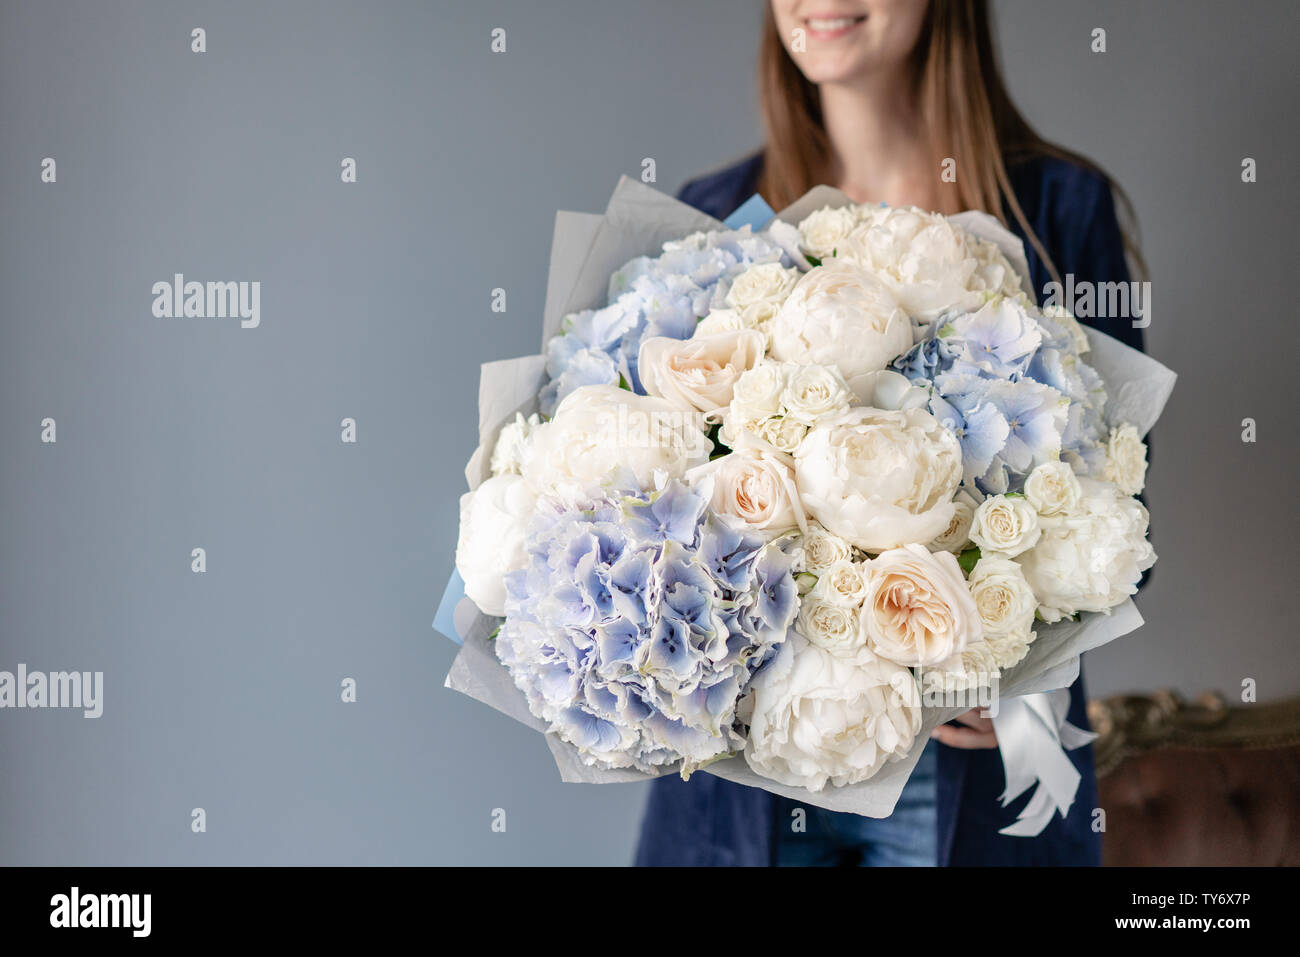 White peonies and blue hydrangea. Beautiful bouquet of mixed flowers in woman hand. Floral shop concept . Handsome fresh bouquet. Flowers delivery Stock Photo